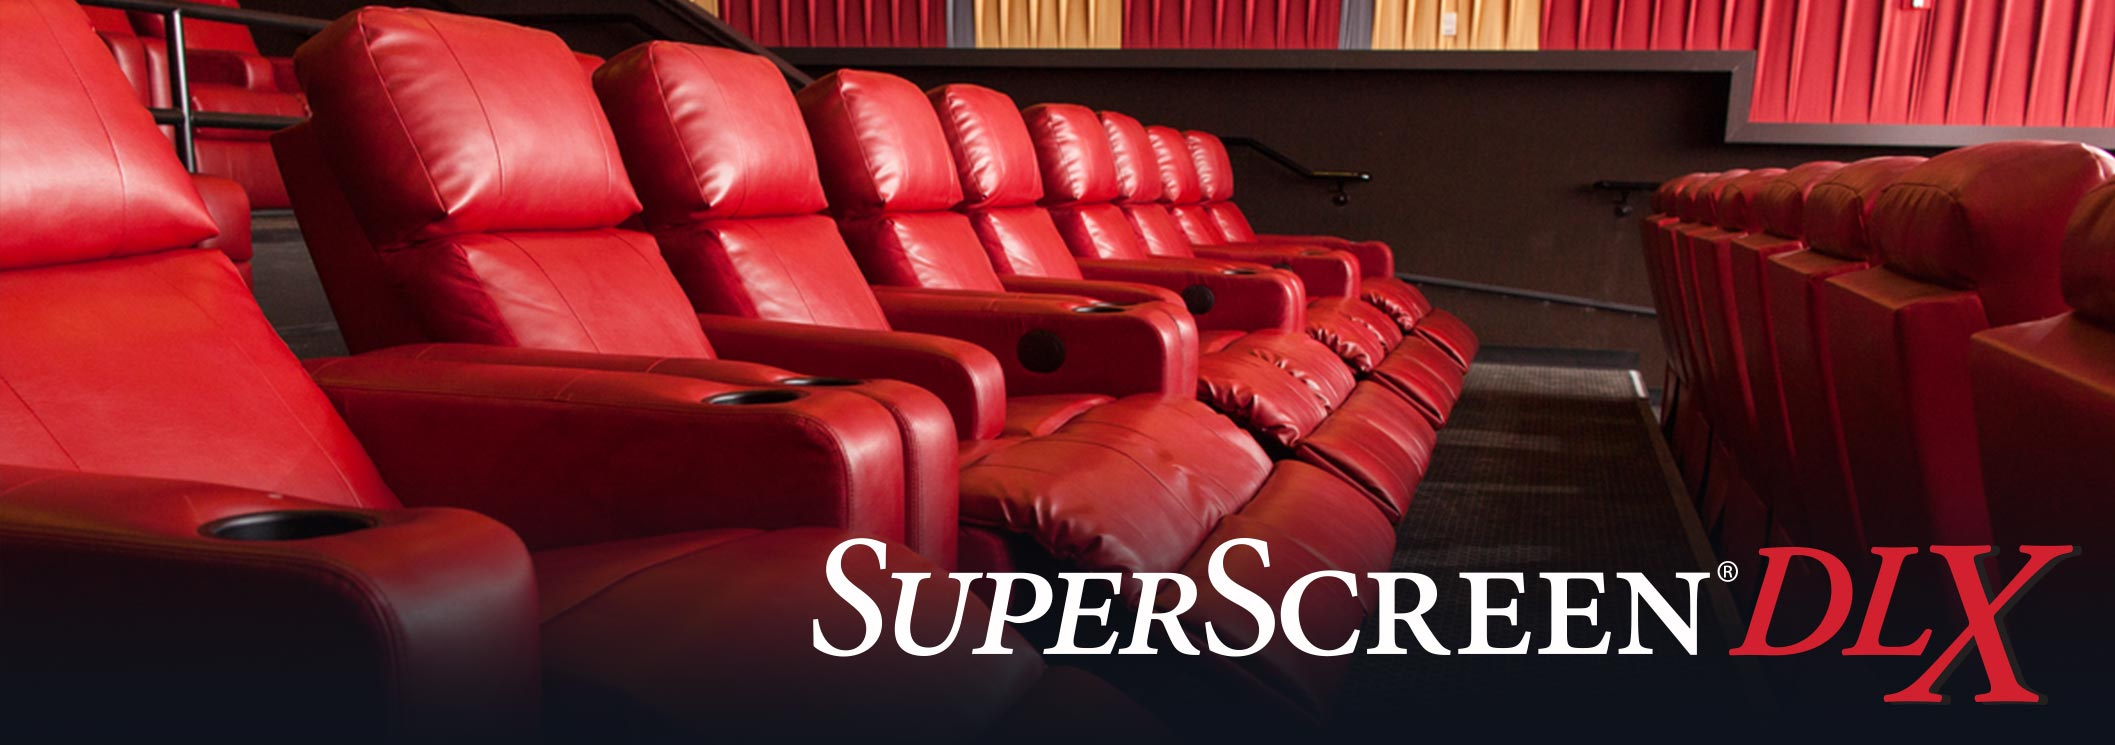 SuperScreen℠ DLX